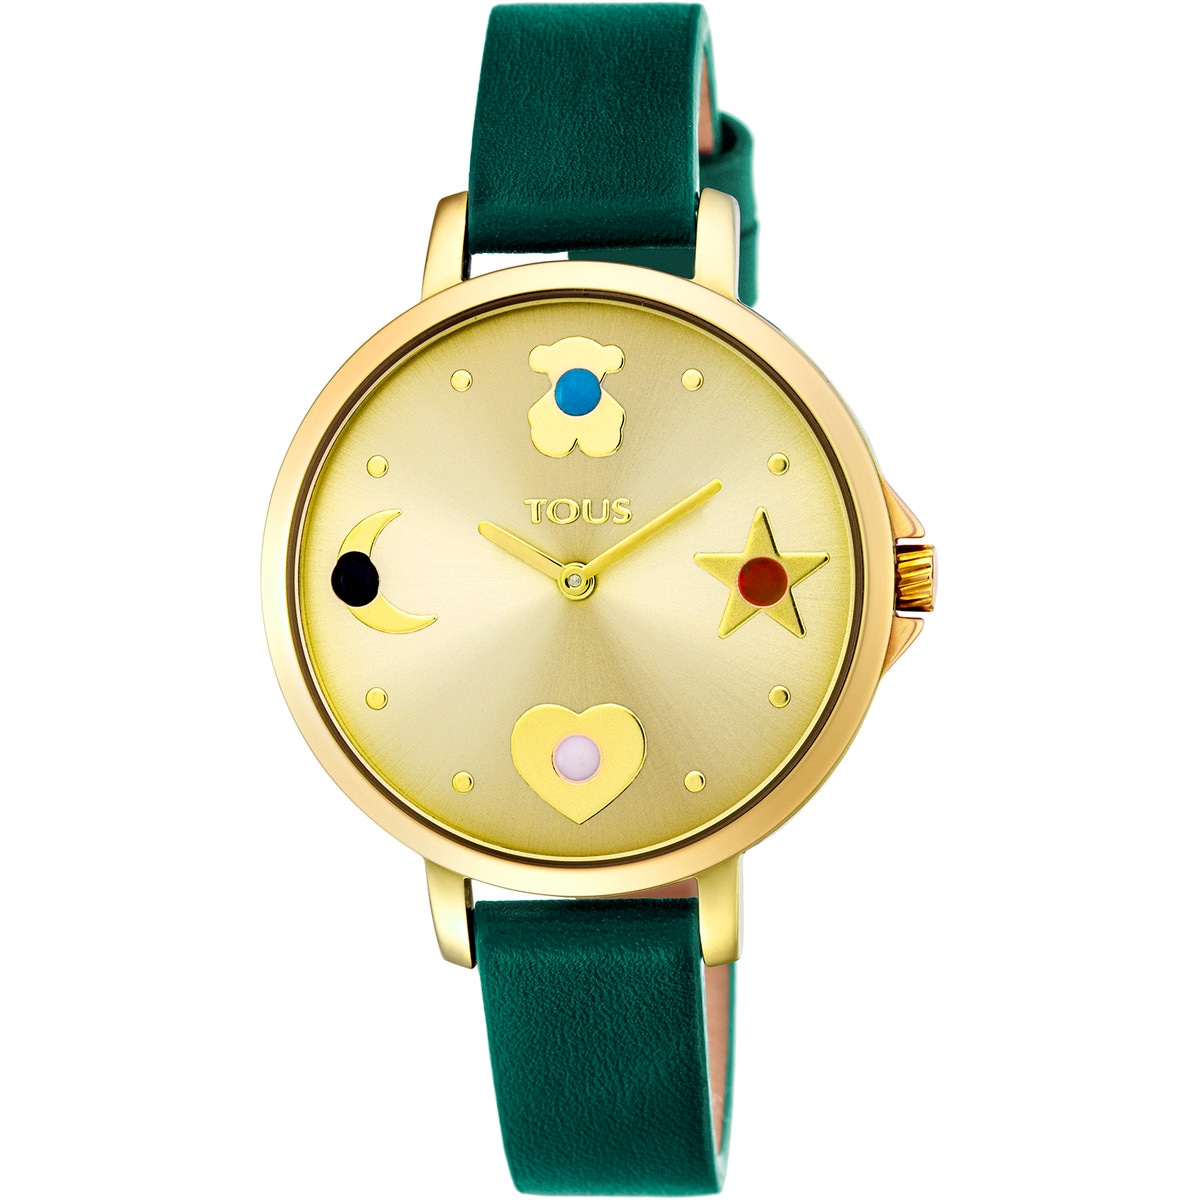 Gold IP steel Super Power Watch with green leather strap